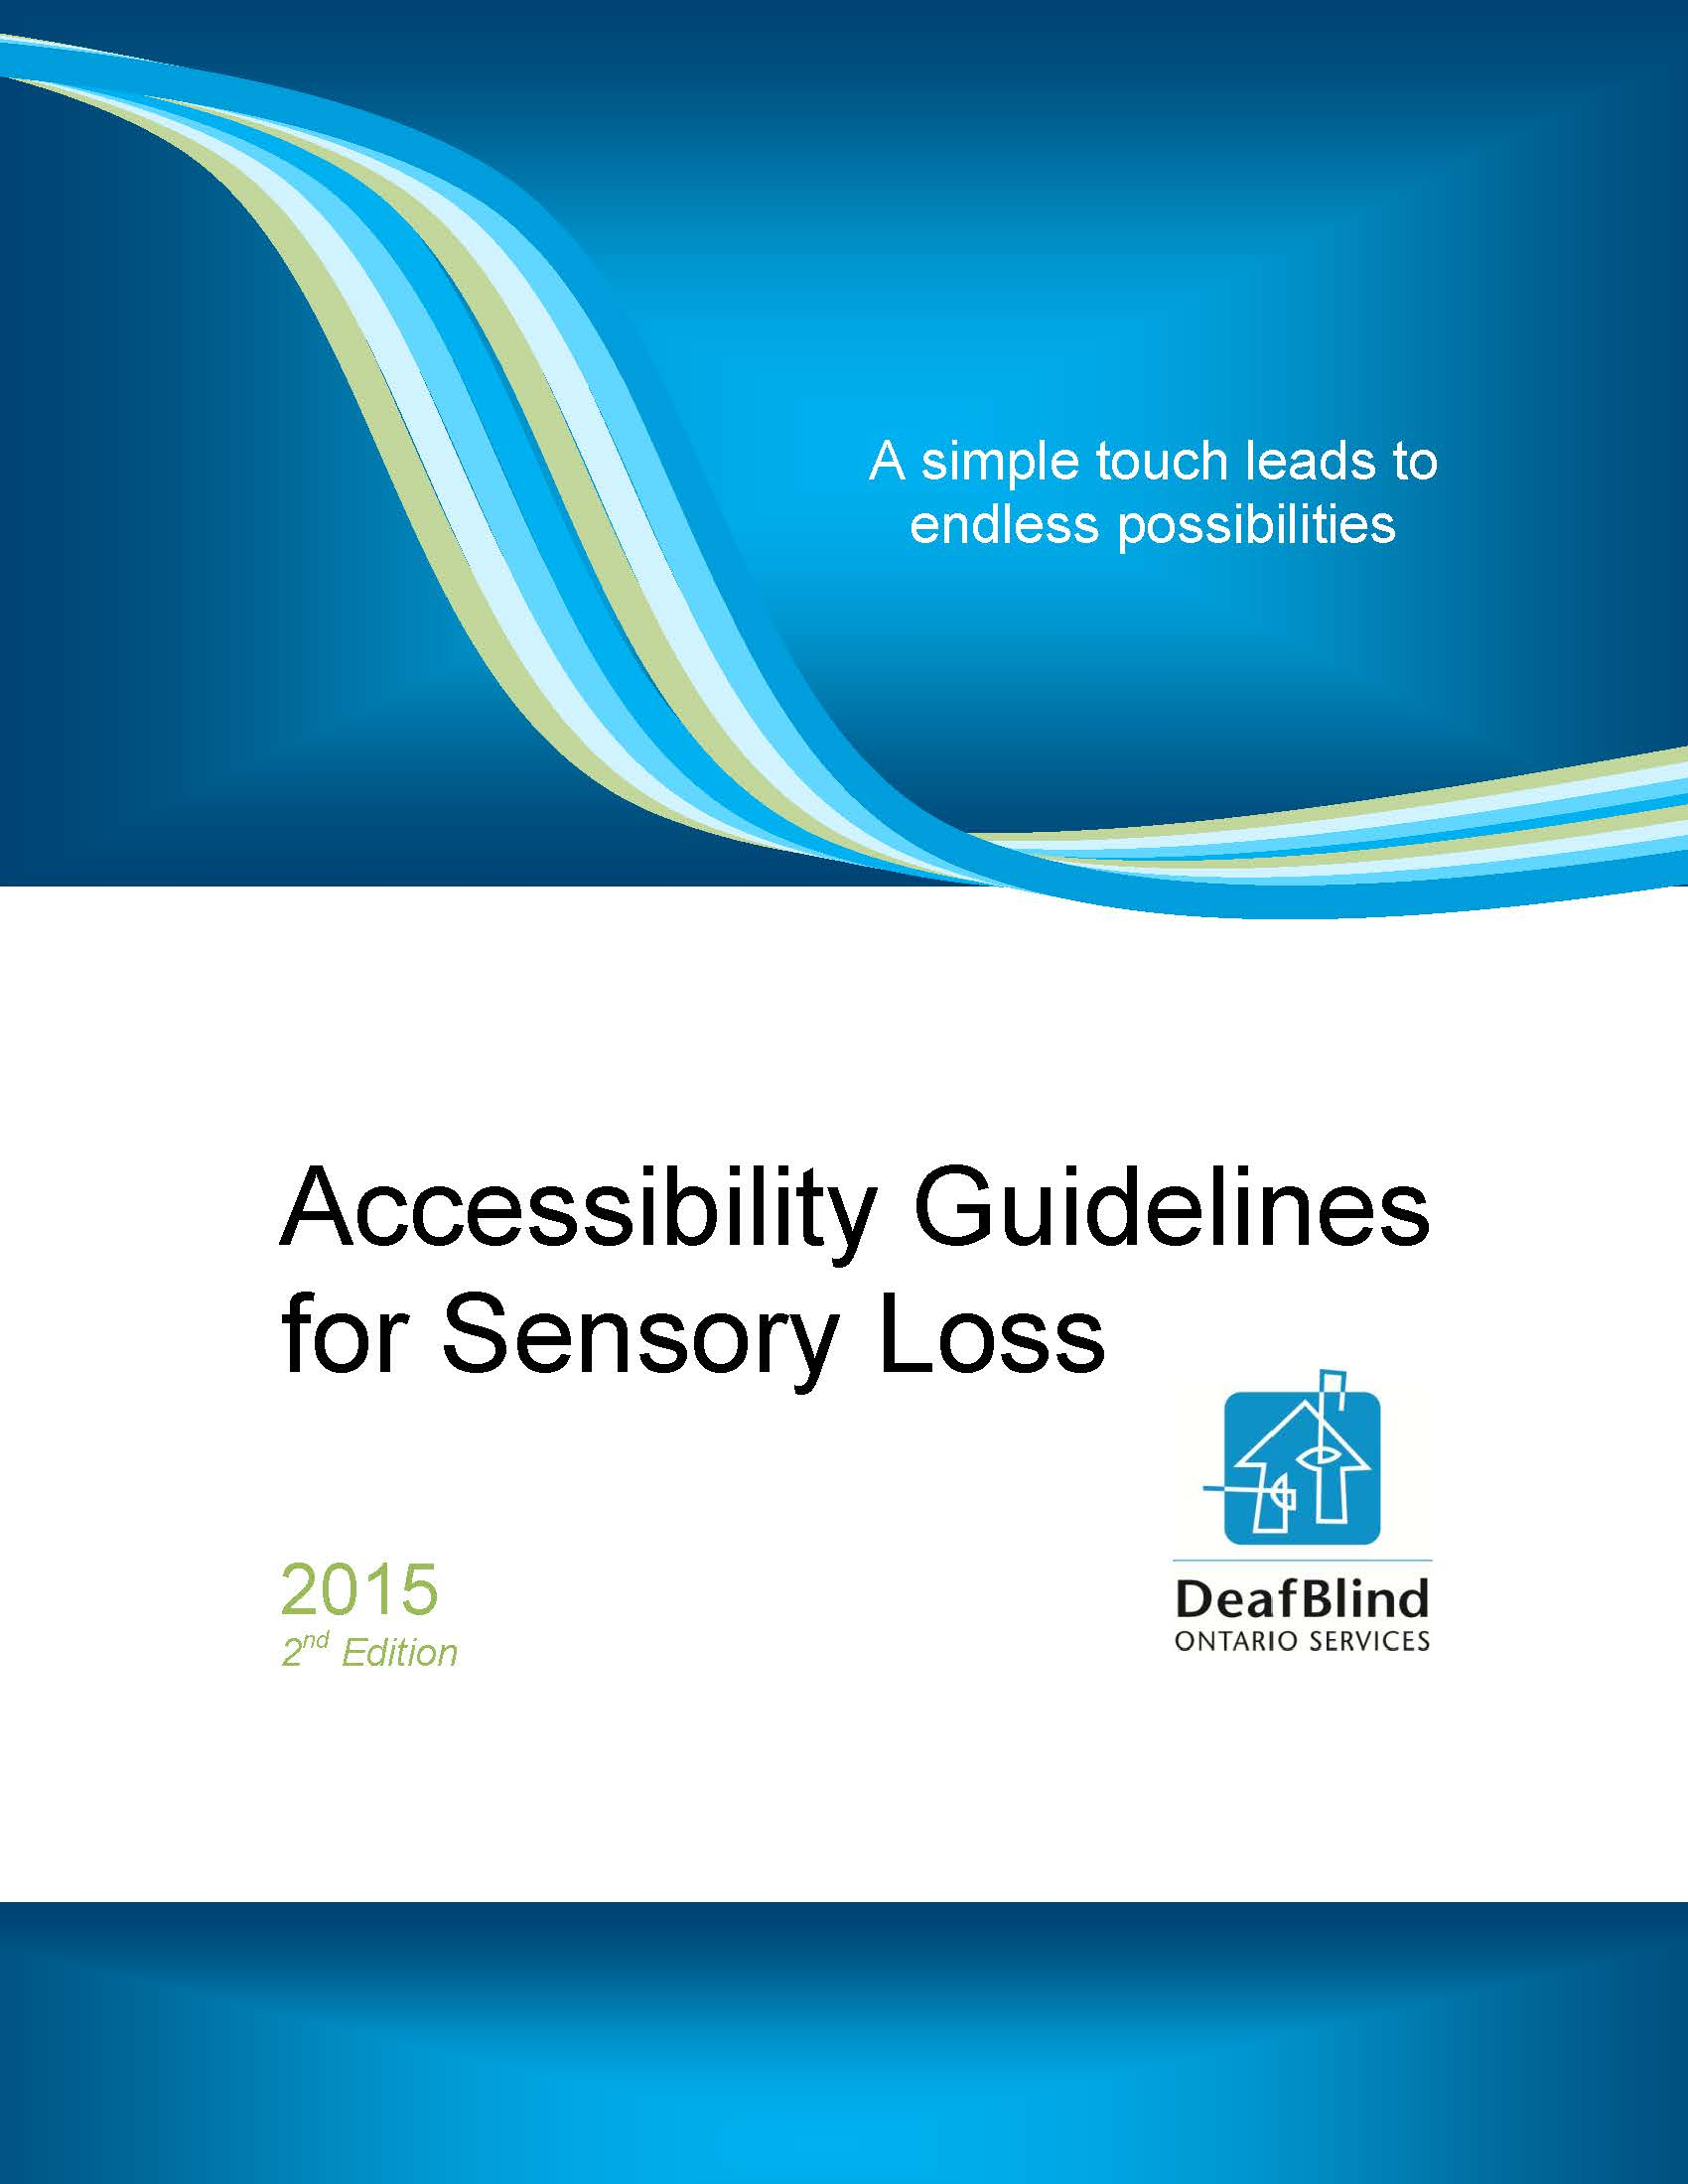 DBOS-2015-Accessibility-Guidelines.jpg